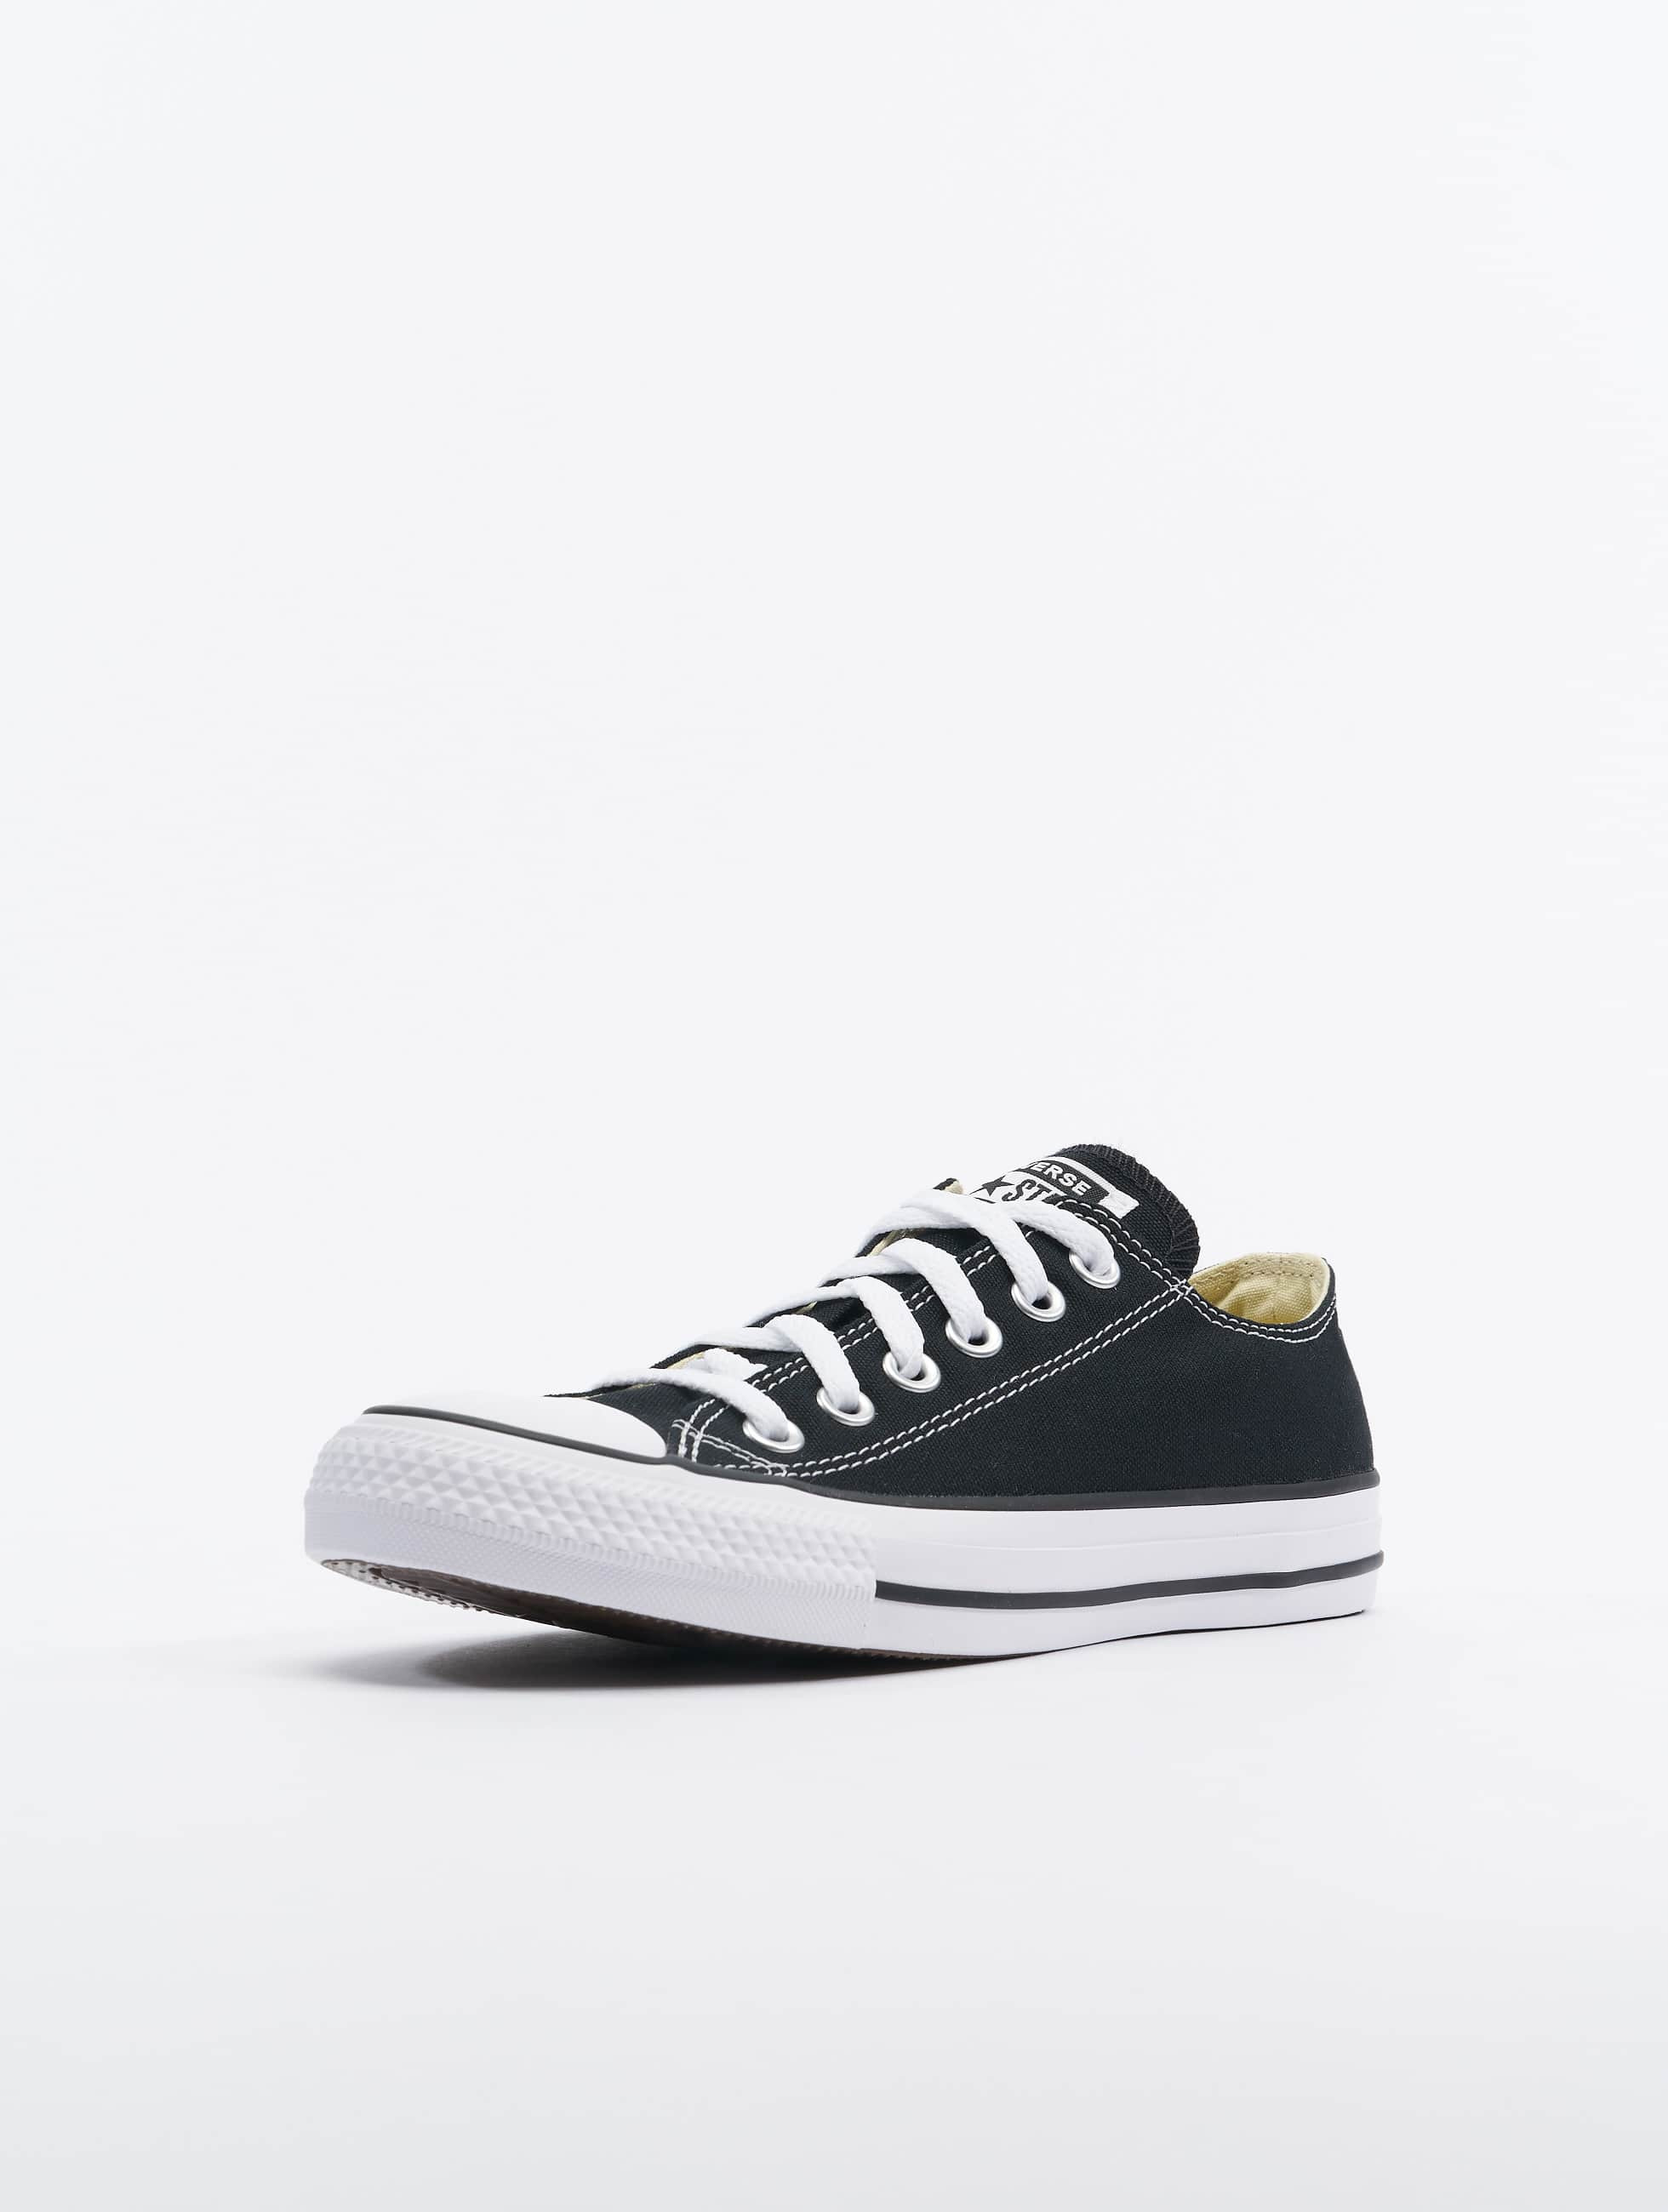 Converse Sneaker All Star Ox Canvas Chucks schwarz